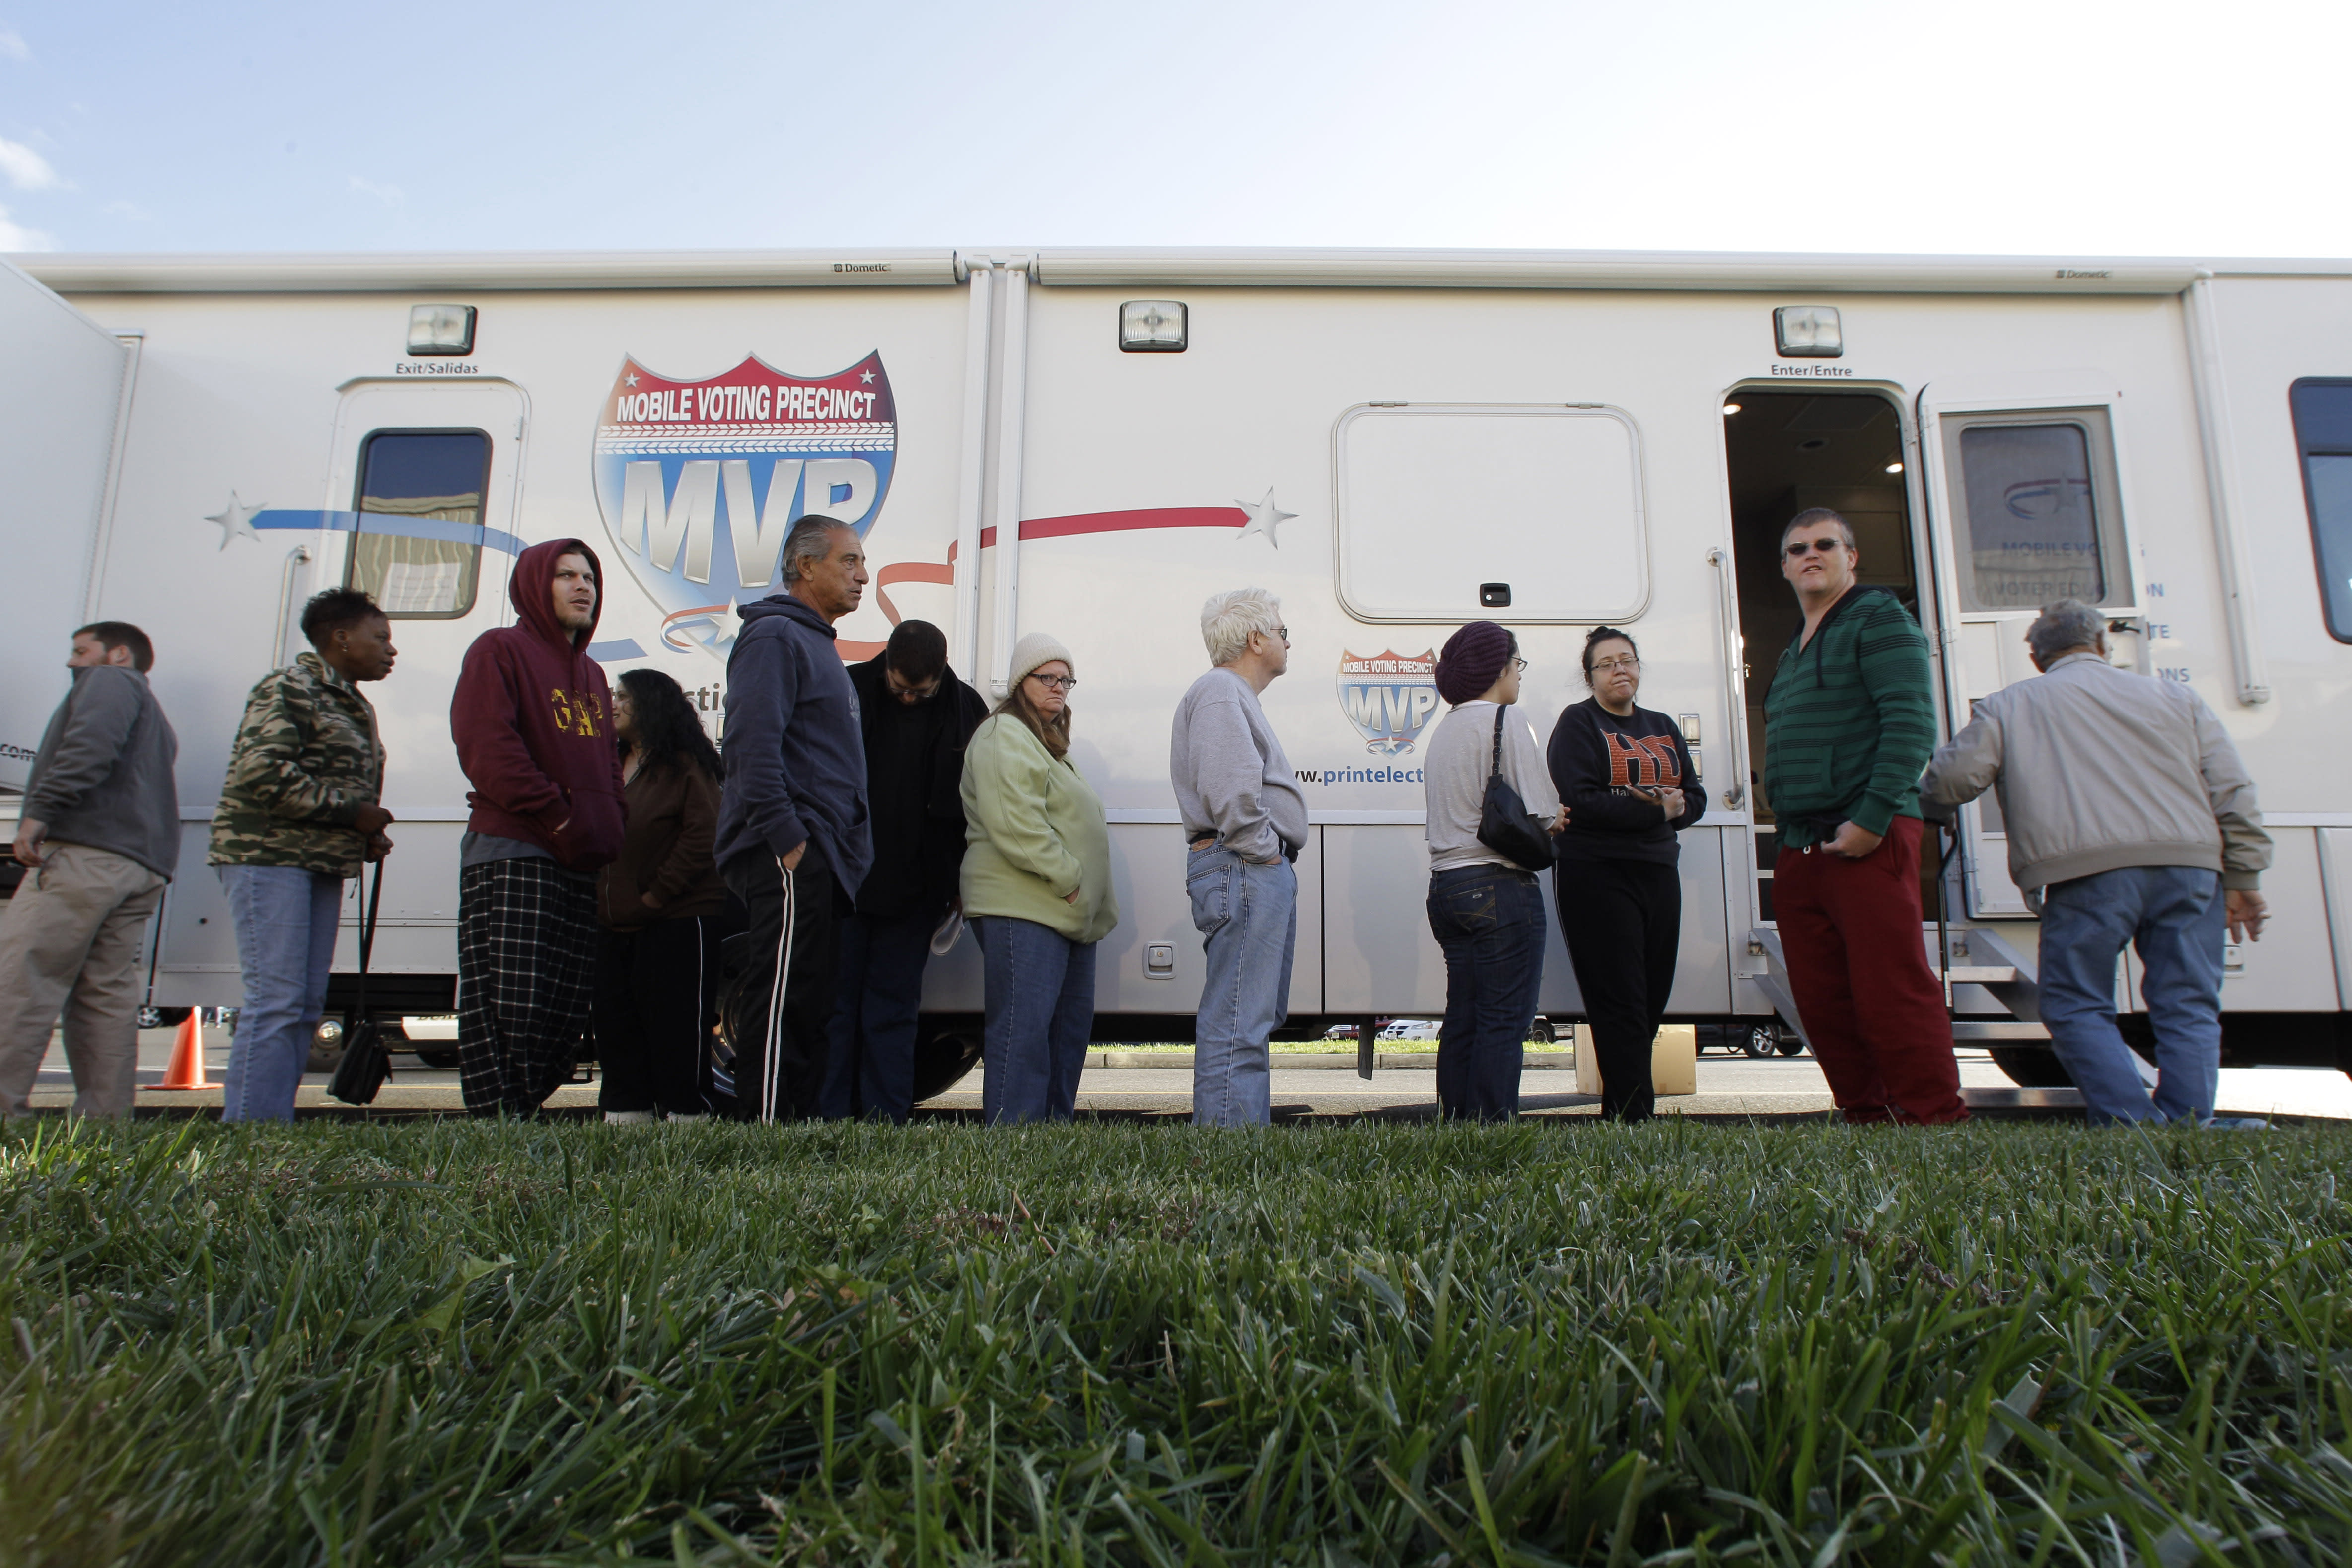 People, many displaced by Superstorm Sandy, line up to vote Monday, Nov. 5, 2012, in Burlington, N.J., at a Mobile Voting Precinct. Many victims displaced by the storm are taking advantage of offers to vote early. (AP Photo/Mel Evans)